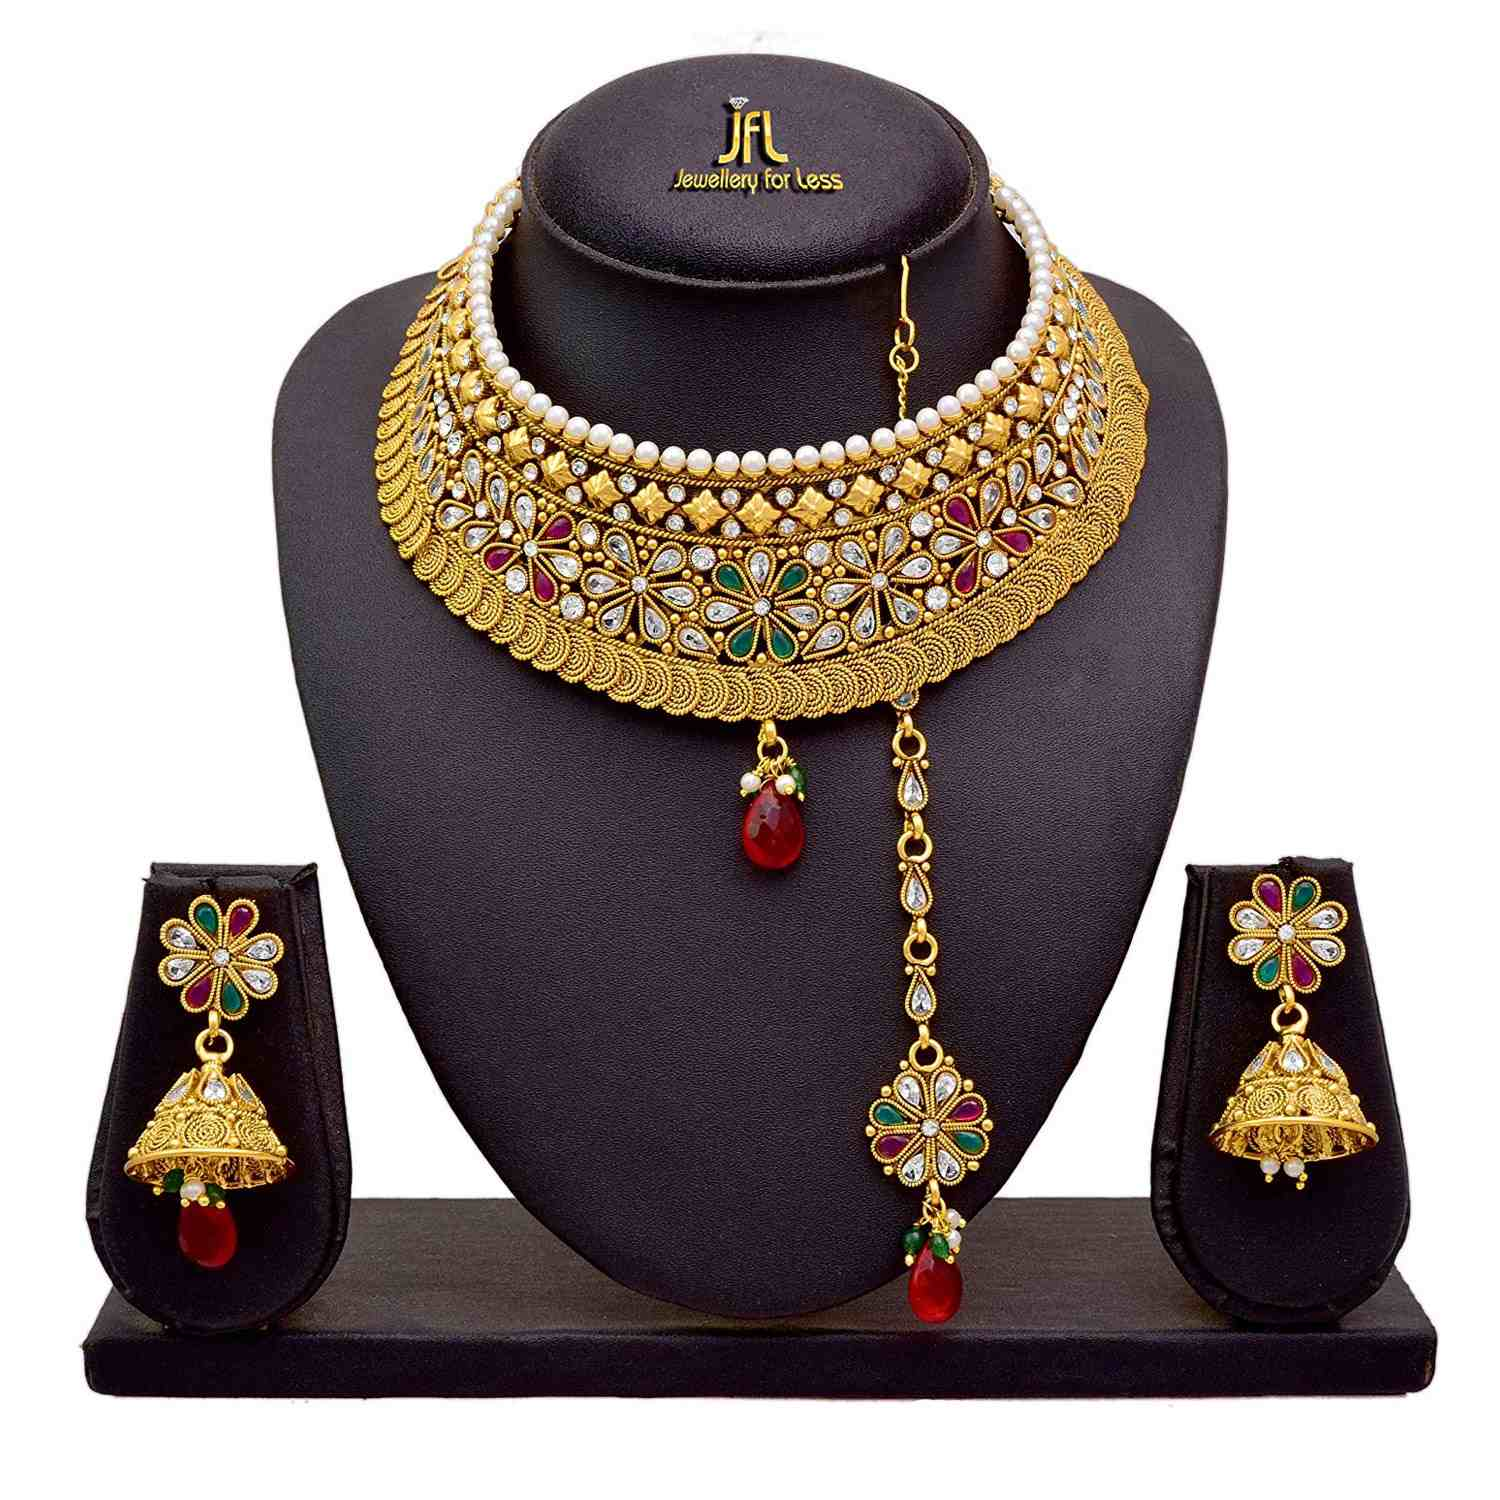 JFL - Traditional Ethnic One Gram Gold Plated Polki Diamonds Pearls Designer Semi Bridal Dulhan Necklace Set / Jewellery Set for Women & Girls